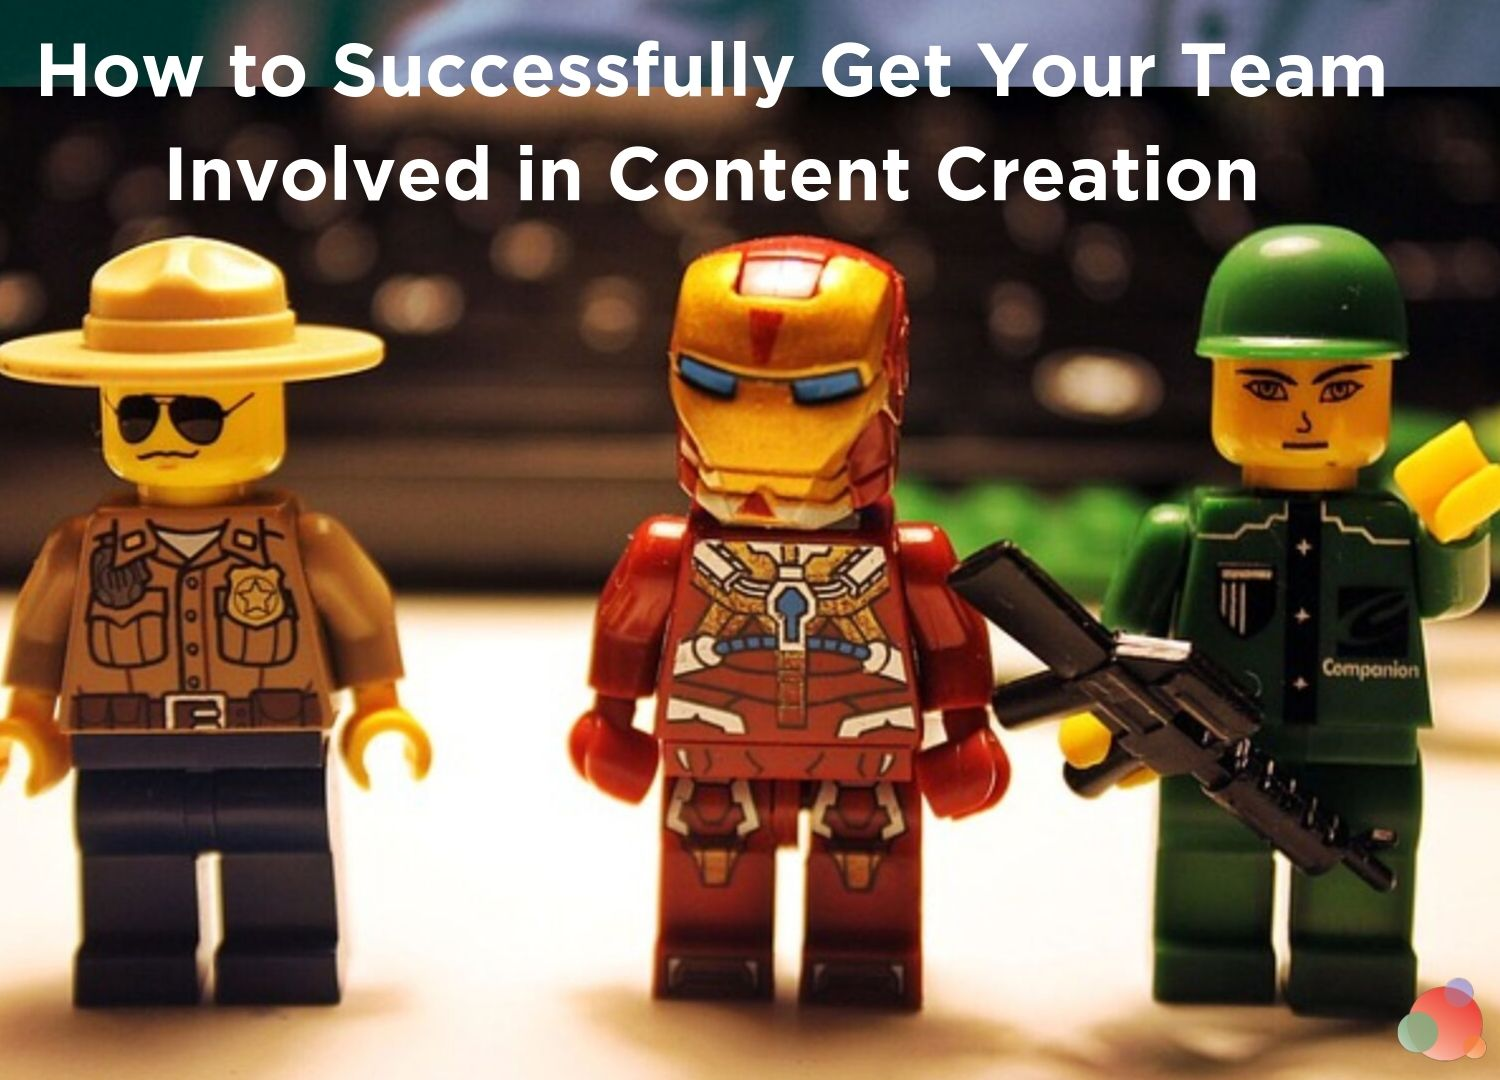 How to Successfully Get Your Team Involved in Content Creation